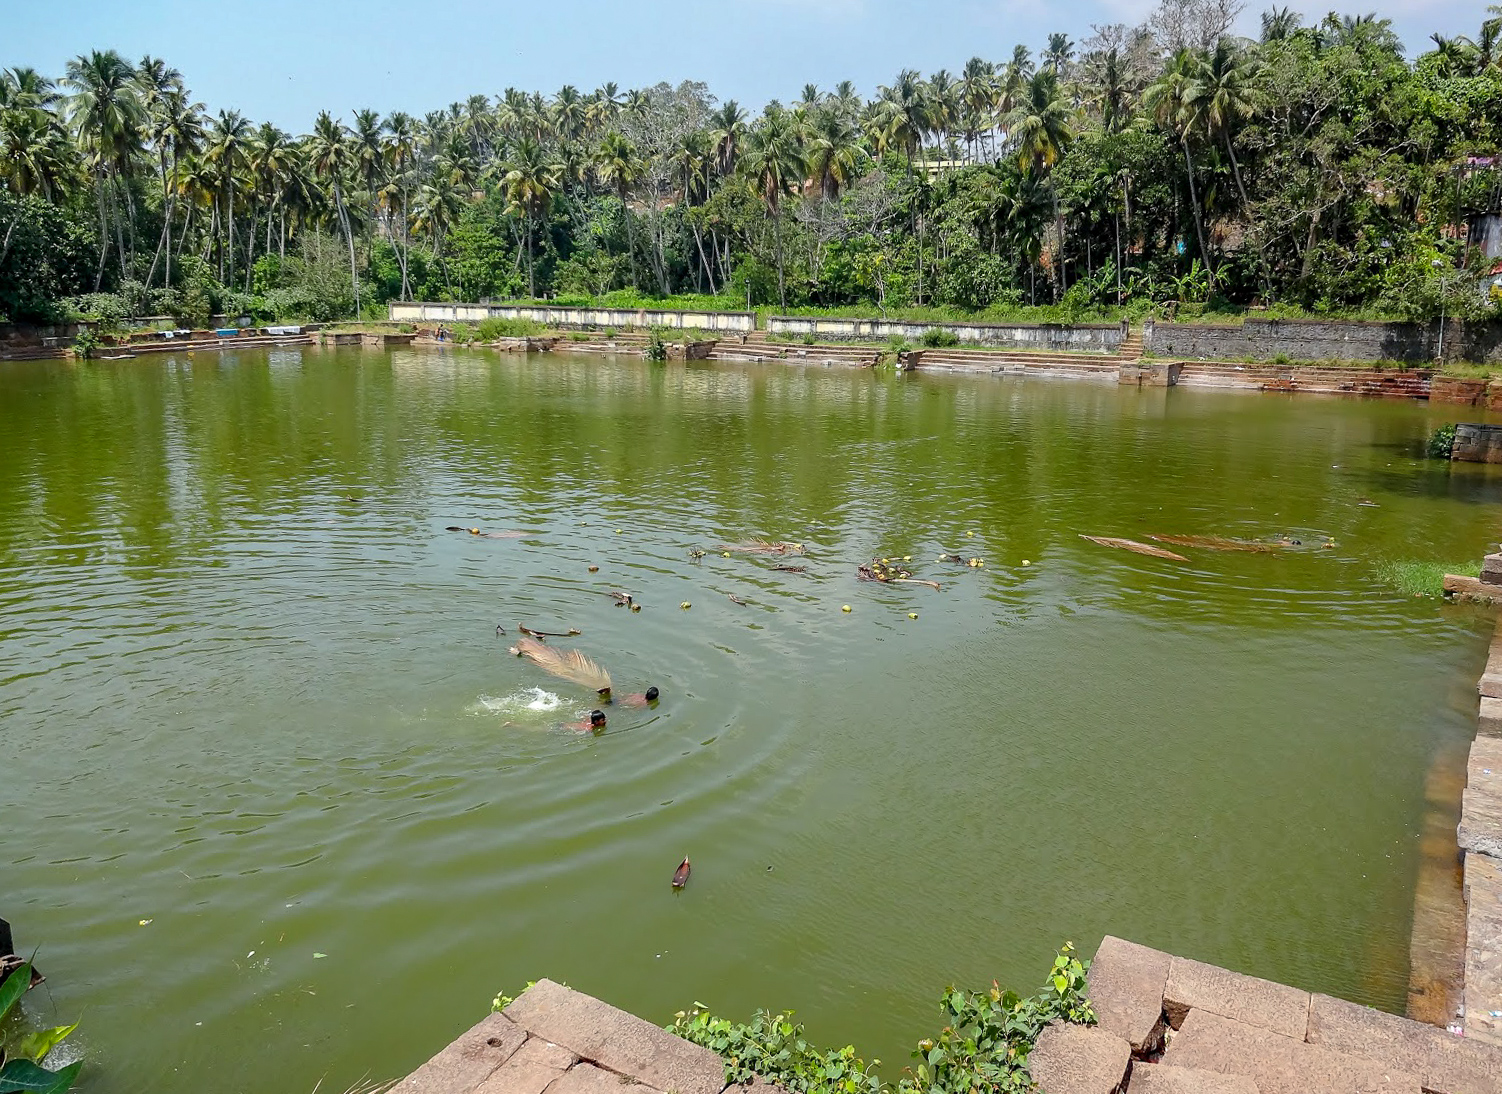 coconuts and plam leaves float in the green water of Janardanaswamy Temple pond, Varkala, Kerala, India